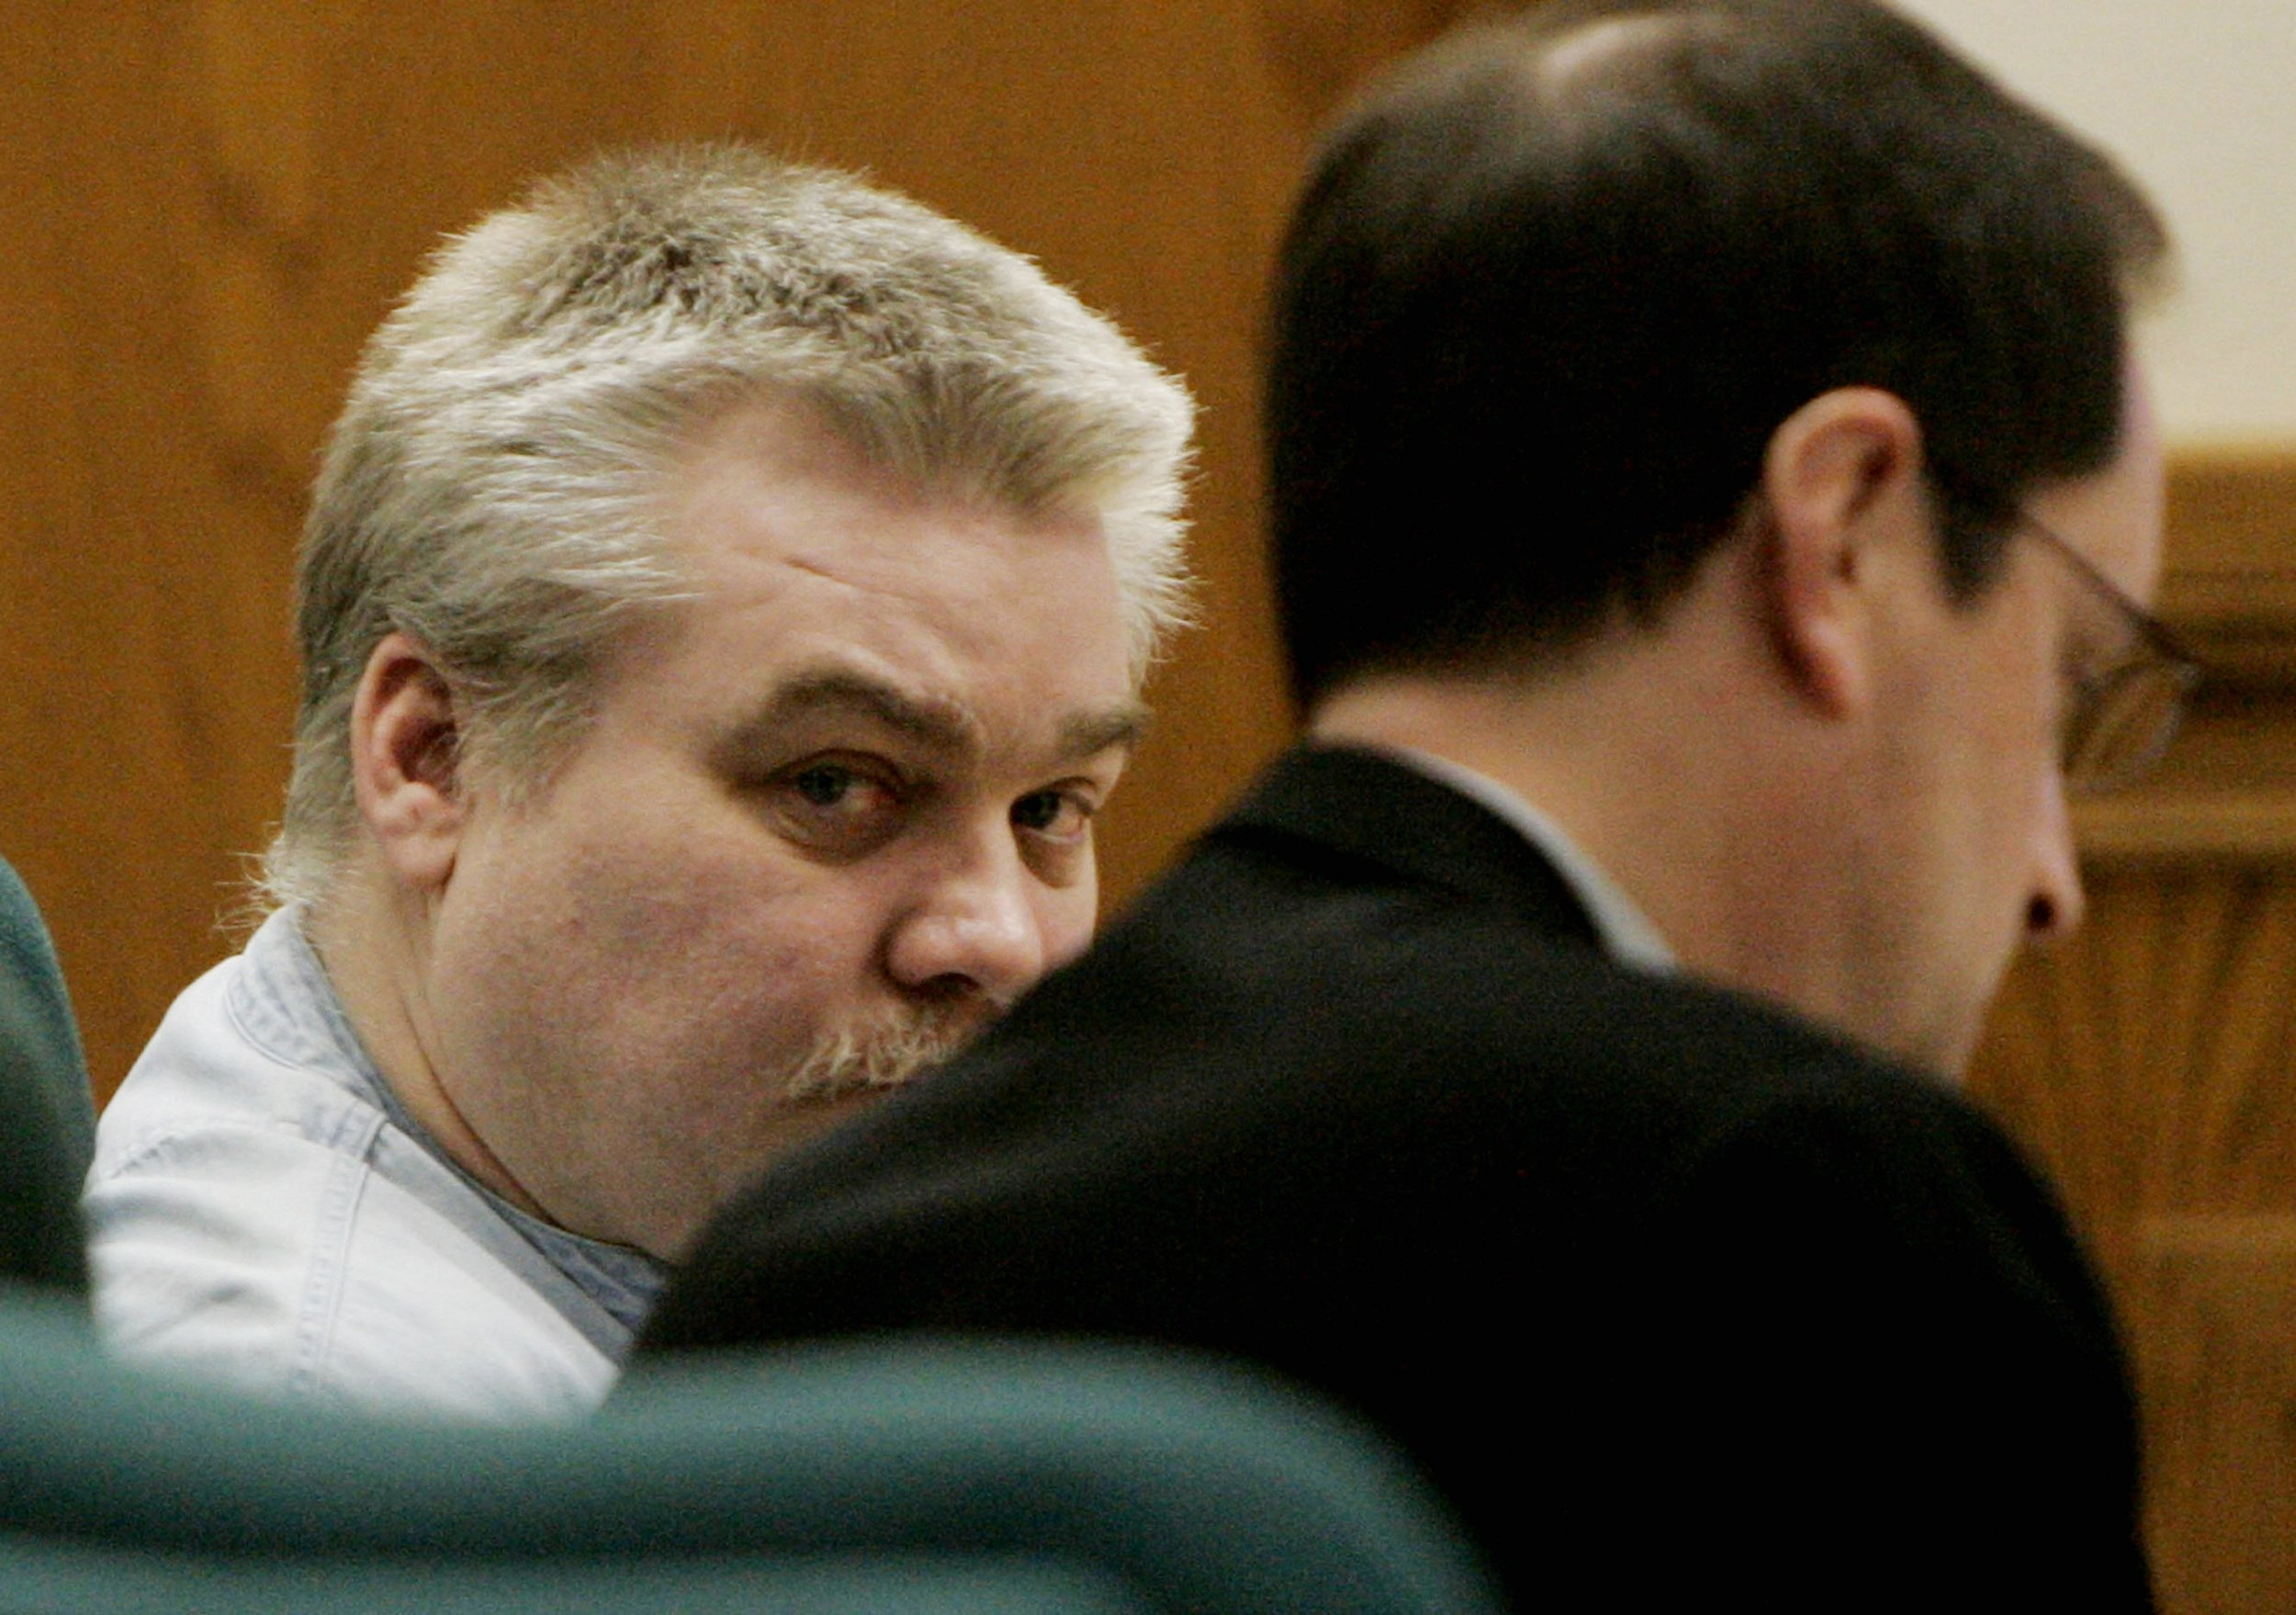 Lawyer for 'Making a Murderer' Subject Steven Avery ...